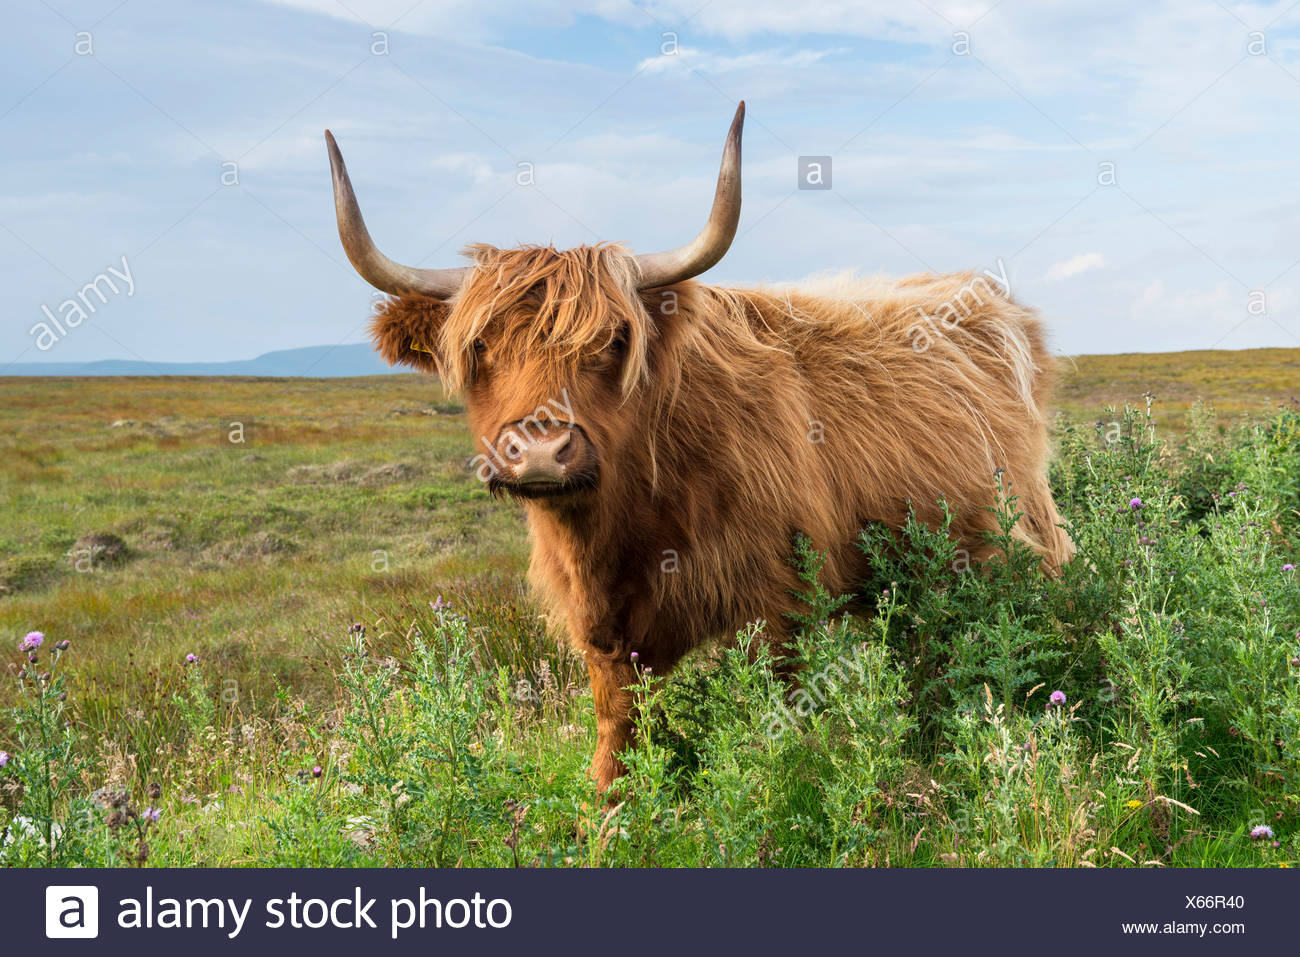 Scottish Highland Cattle or Kyloe, northern Scotland, Scotland, United Kingdom, Europe - Stock Image